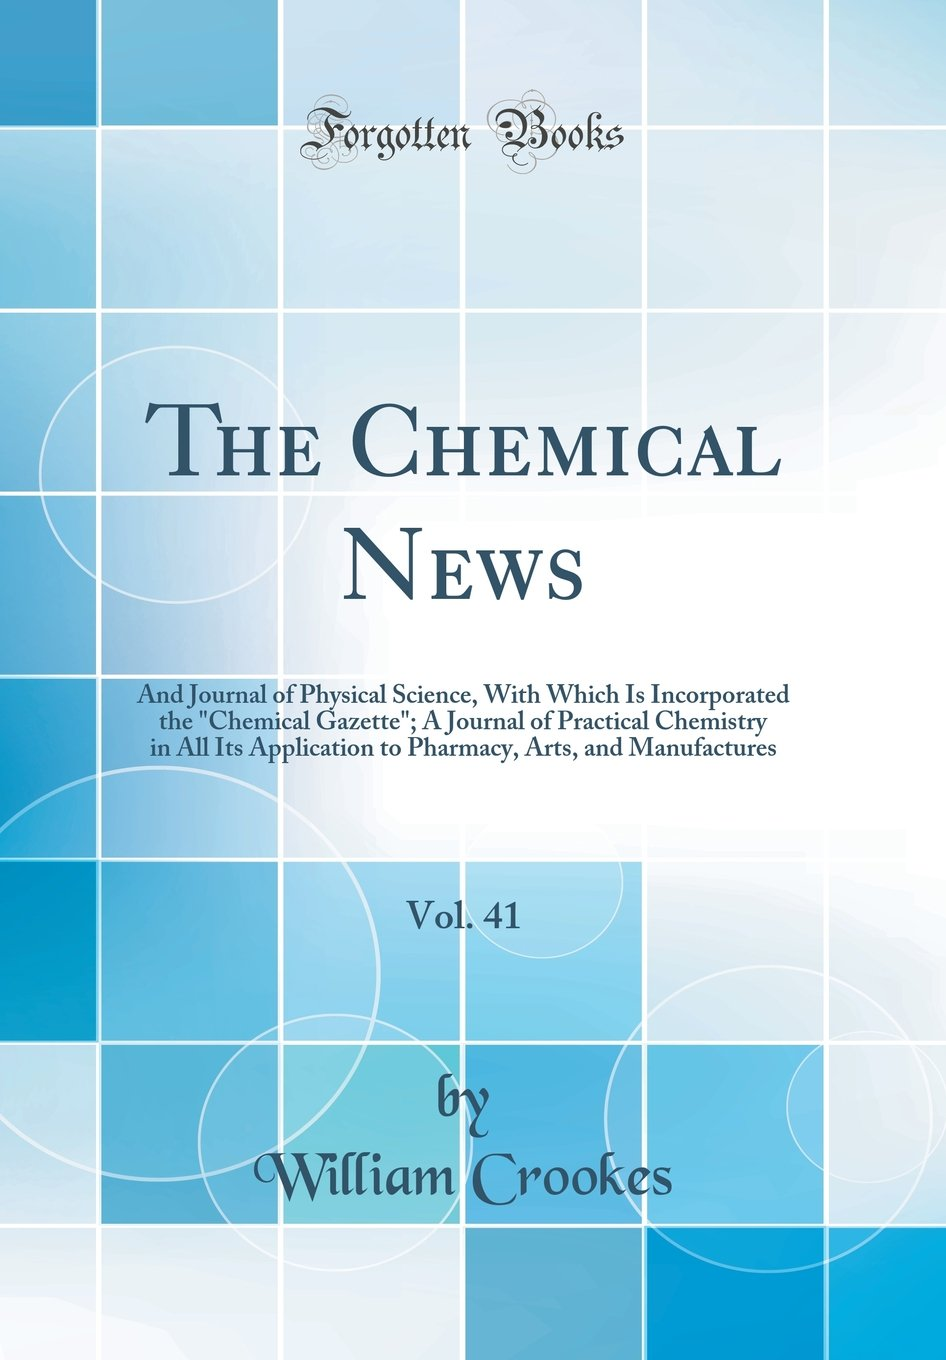 The Chemical News, Vol. 41: And Journal of Physical Science, With Which Is Incorporated the Chemical Gazette; A Journal of Practical Chemistry in Arts, and Manufactures (Classic Reprint) pdf epub